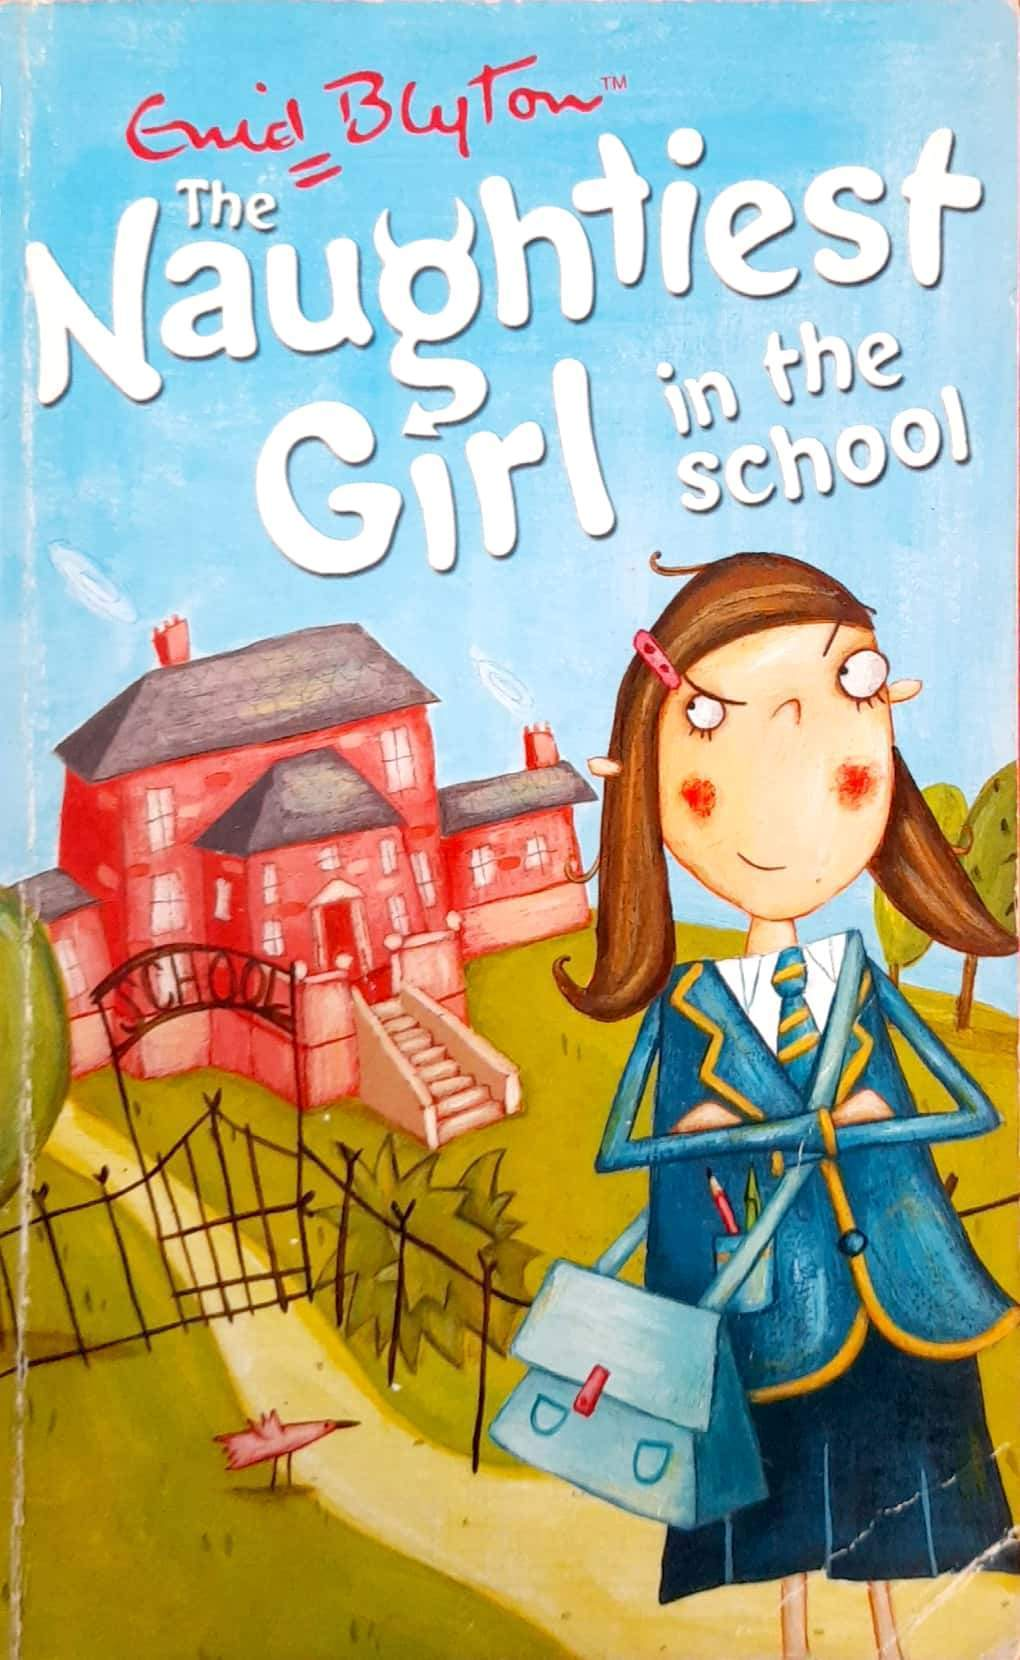 The Naughtiest Girl in the School (The Naughtiest Girl #1)